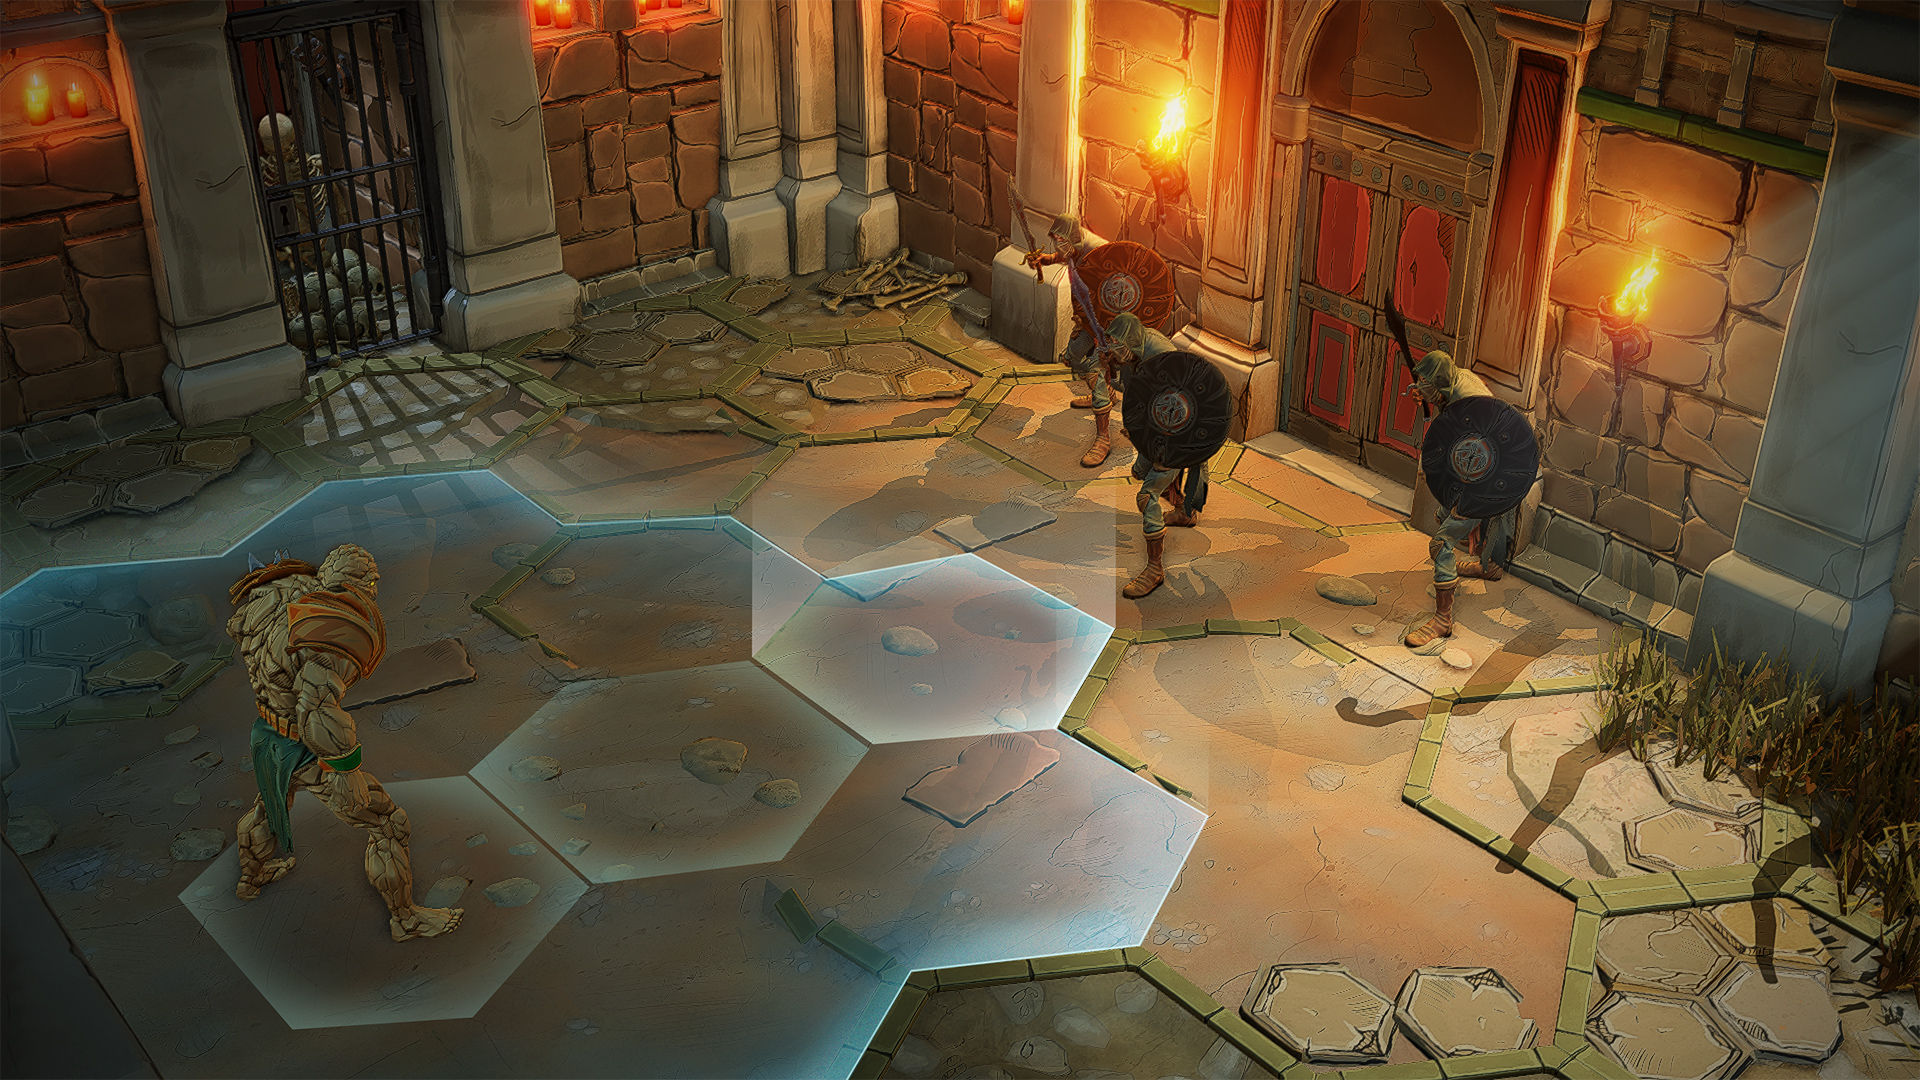 Intimidatingly enormous fantasy board game Gloomhaven coming to PC in 2019